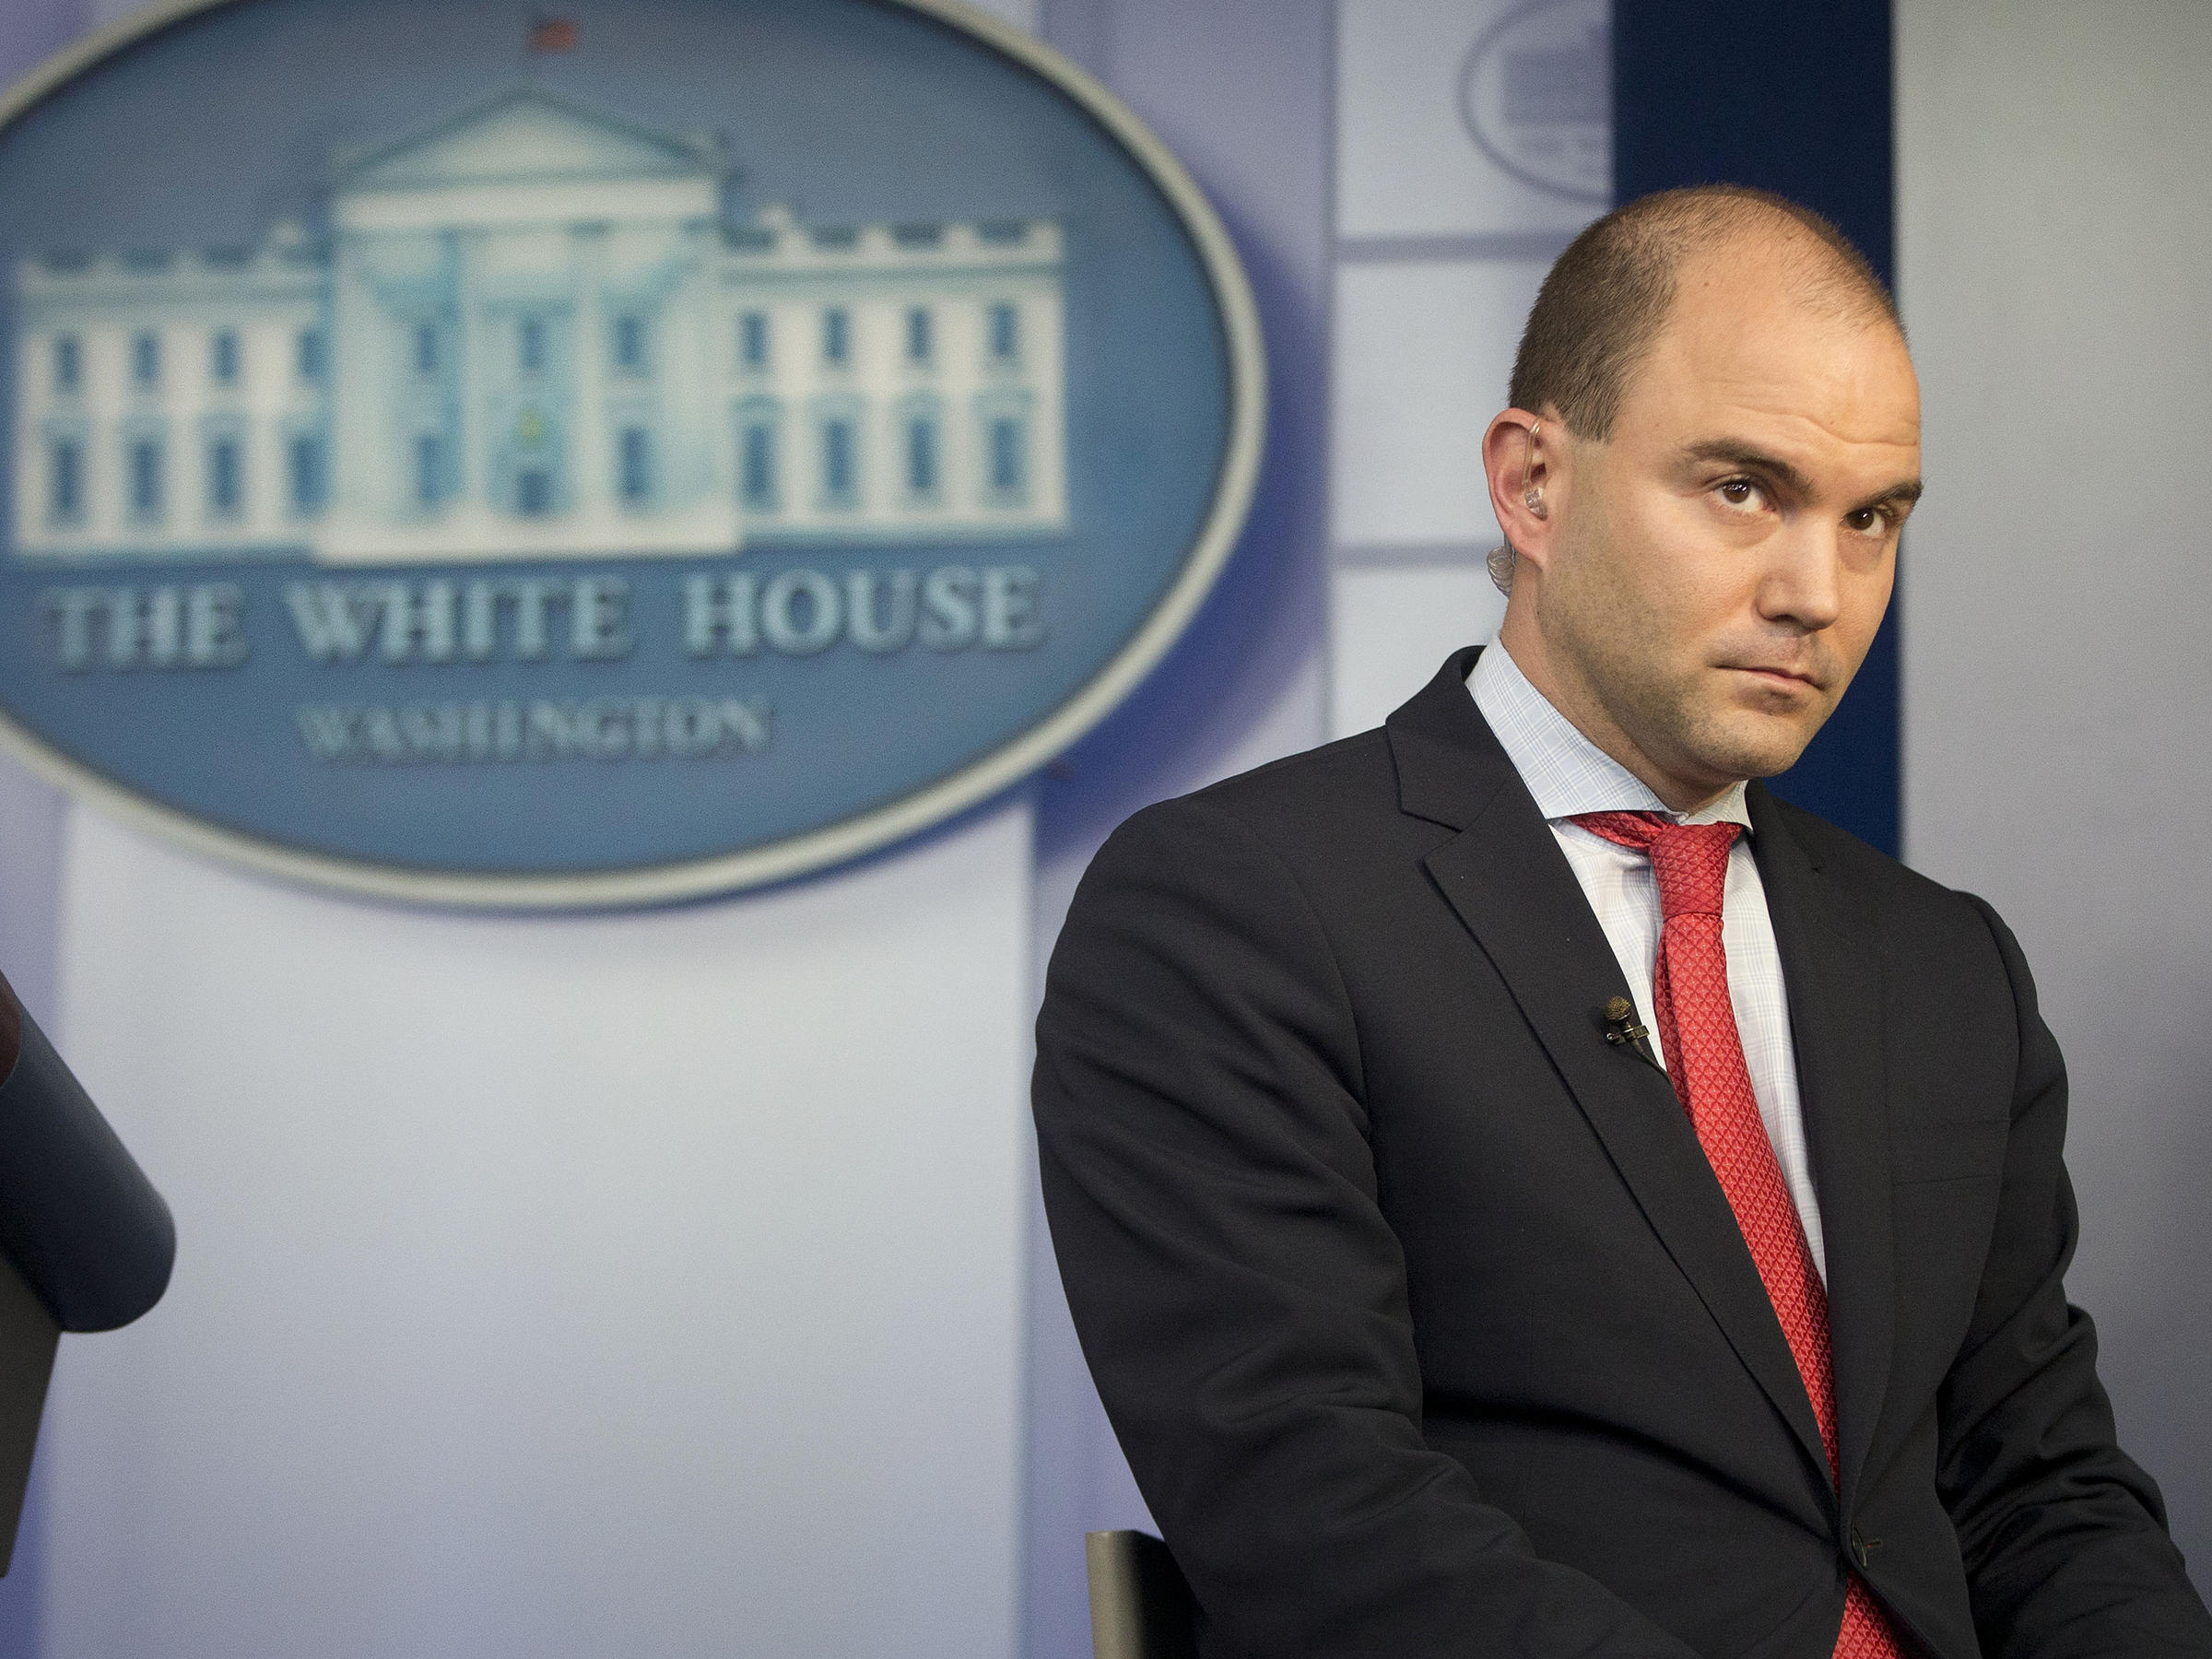 obama staffer looks back on his white house years: 'it can take a